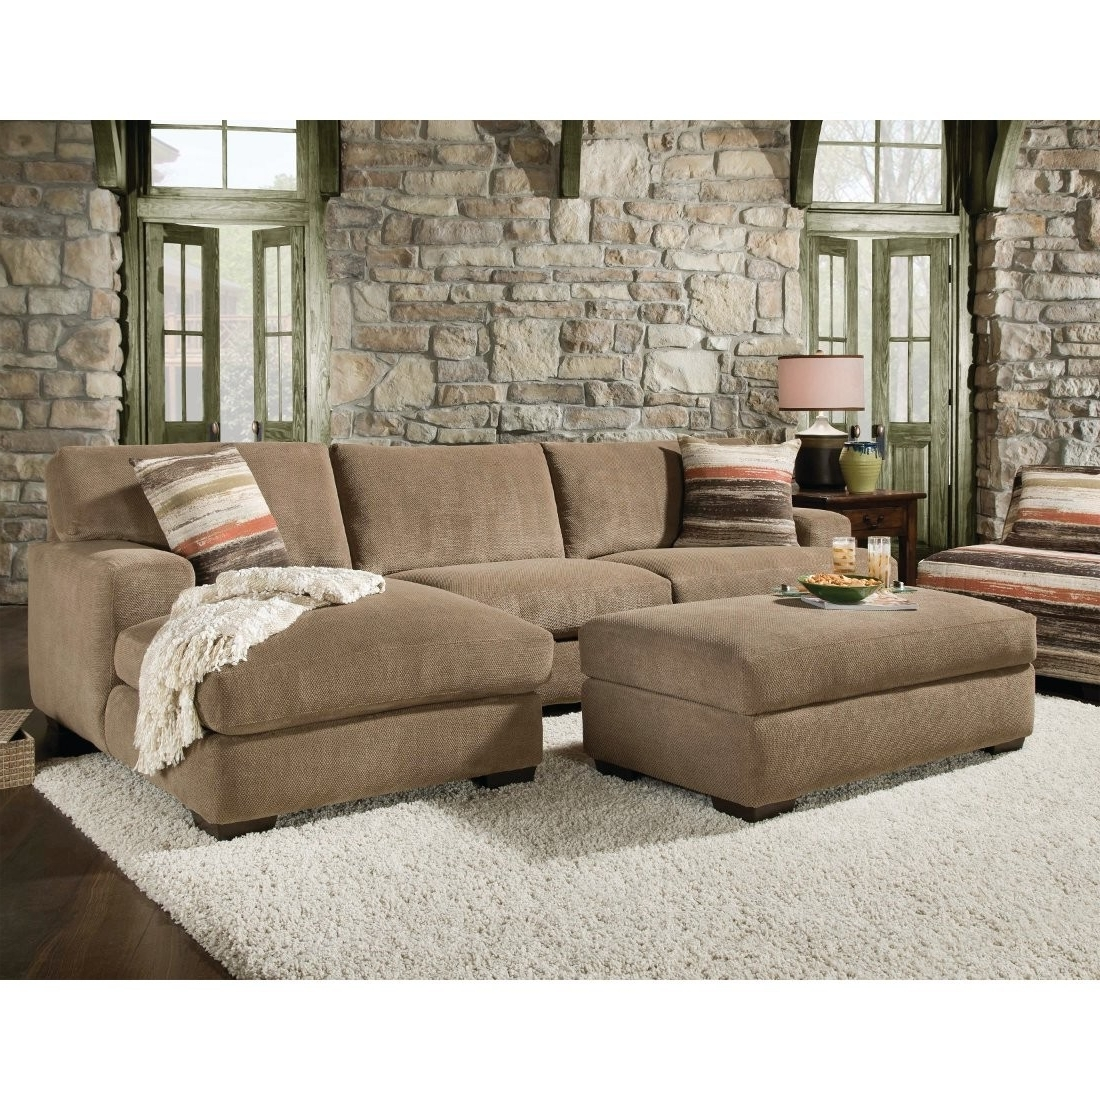 Beautiful Sectional Sofa With Chaise And Ottoman Pictures Within Famous Small Leather Sectionals With Chaise (View 2 of 15)